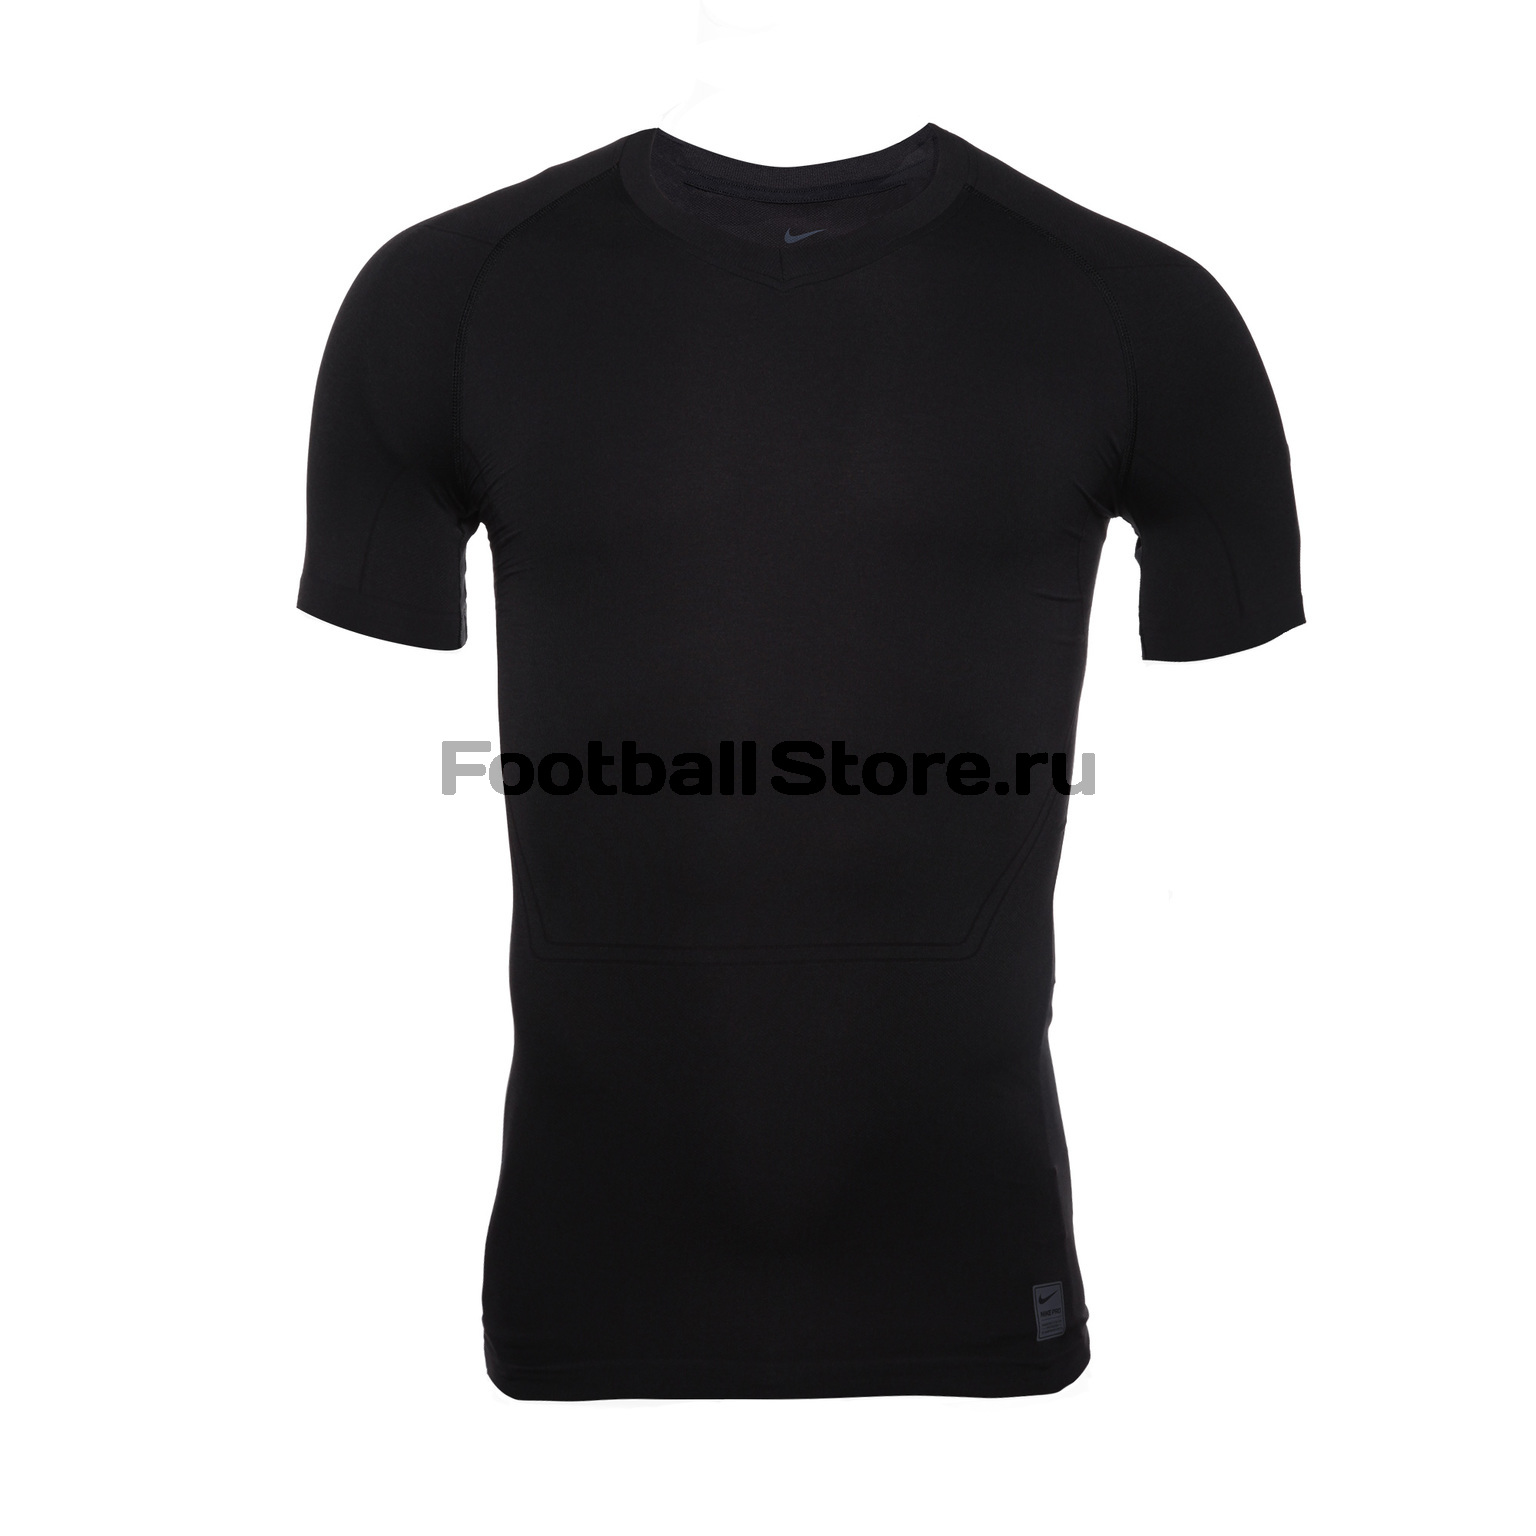 Белье футболка Nike Smls LS Top 824619-010 футболка nike drill football top 807245 010 черный 164